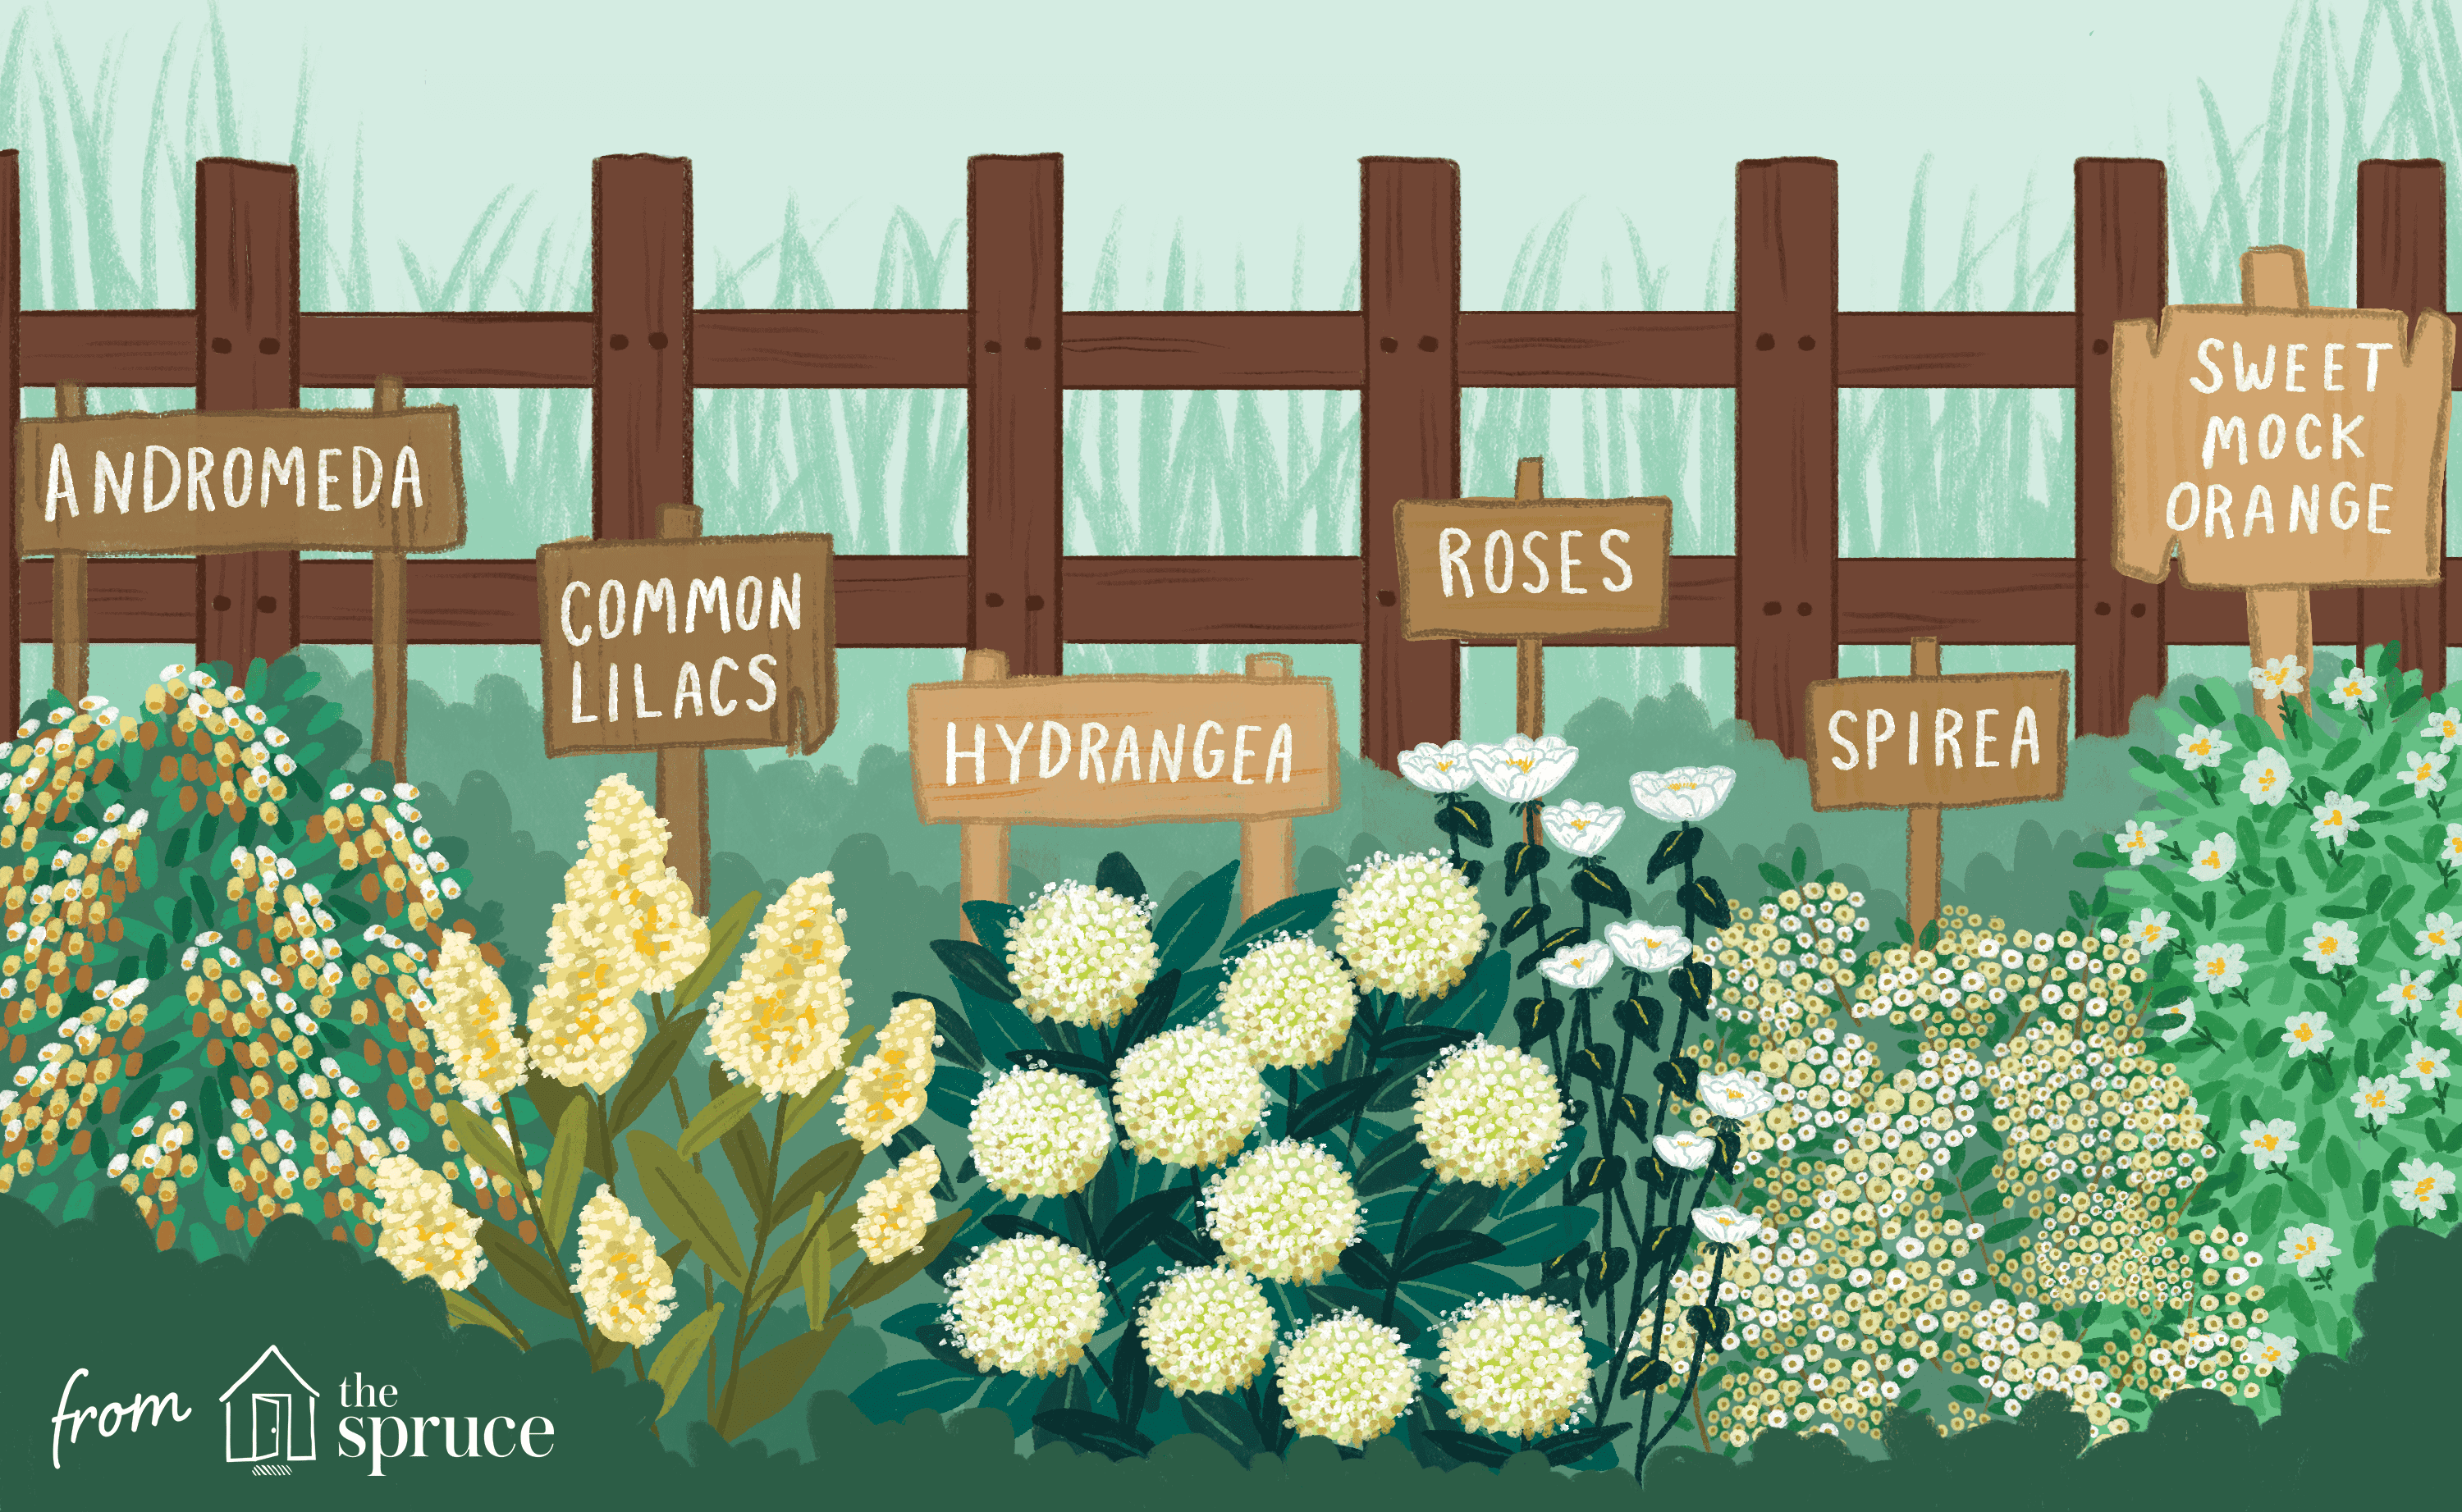 illustration of shrubs with white flowers